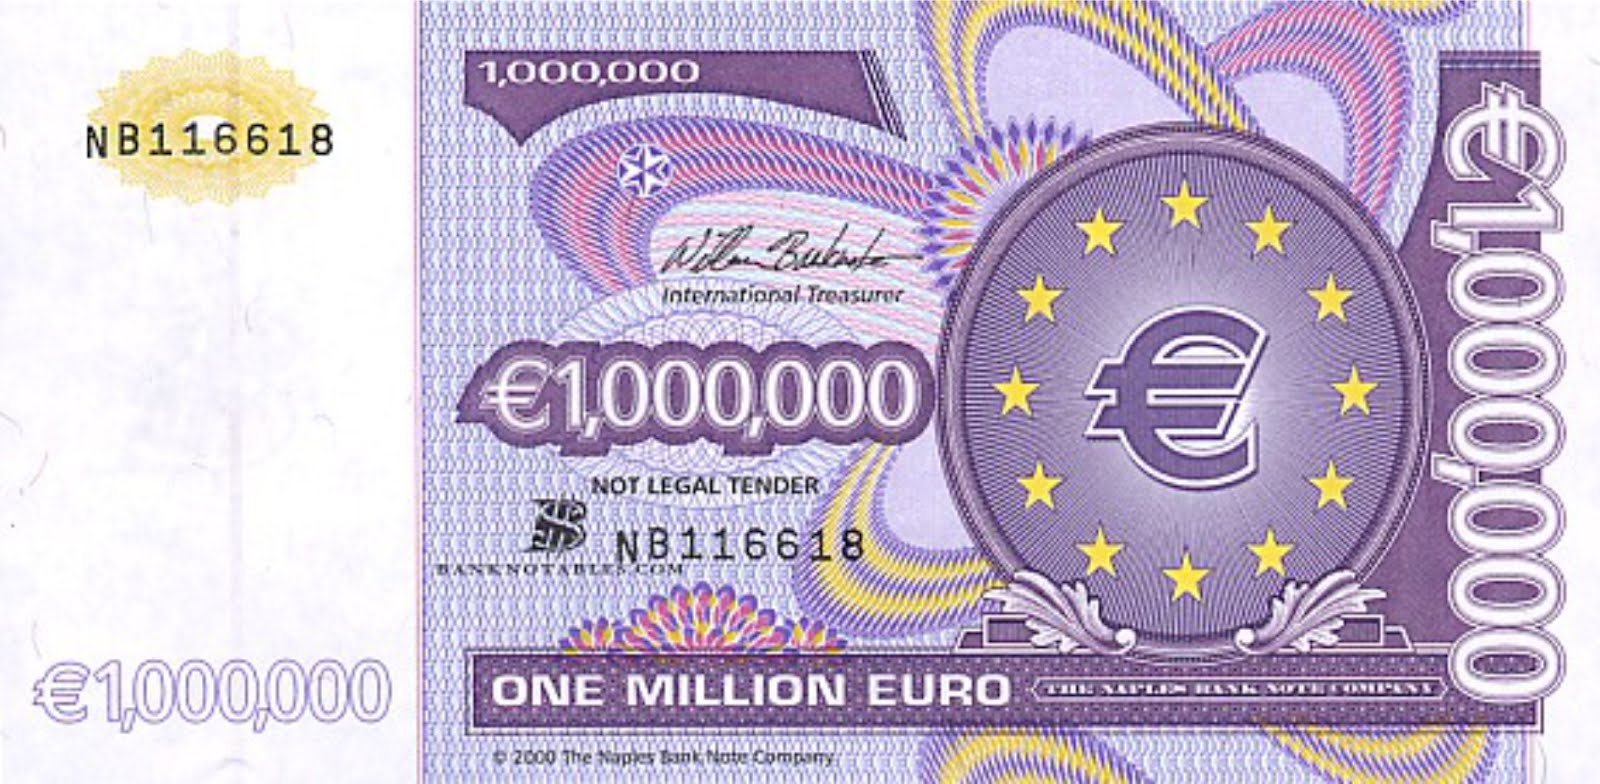 https://underinformation.files.wordpress.com/2012/07/1one-million-euro-note-obverse.jpg